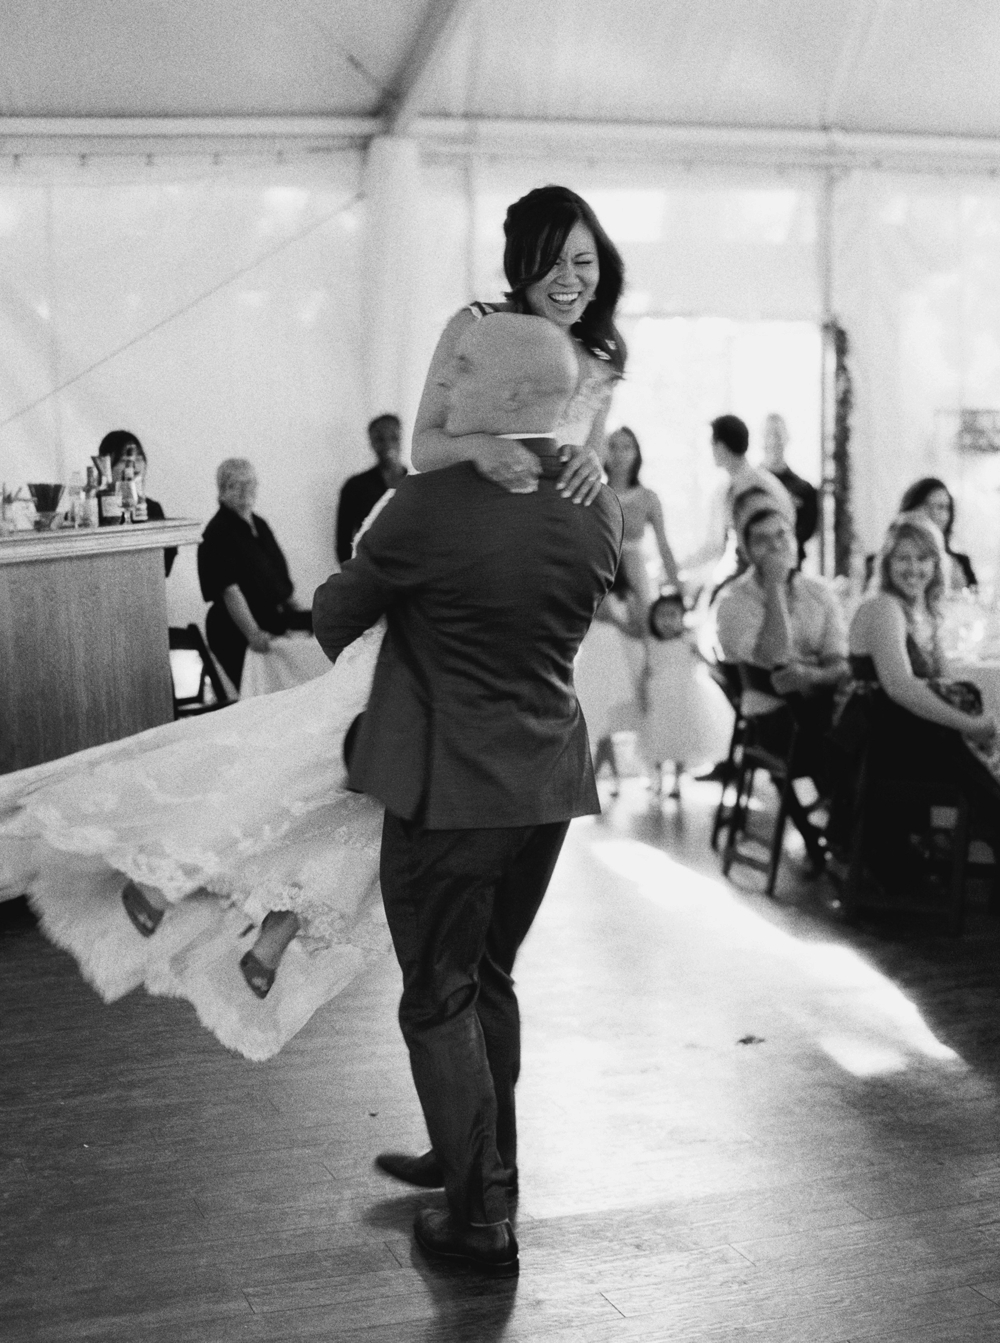 Calgary Wedding Photographer | Meadow Muse Pavilion Wedding | Canmore Photographers | Fish Creek Park Tent Wedding | Bride and groom first dance